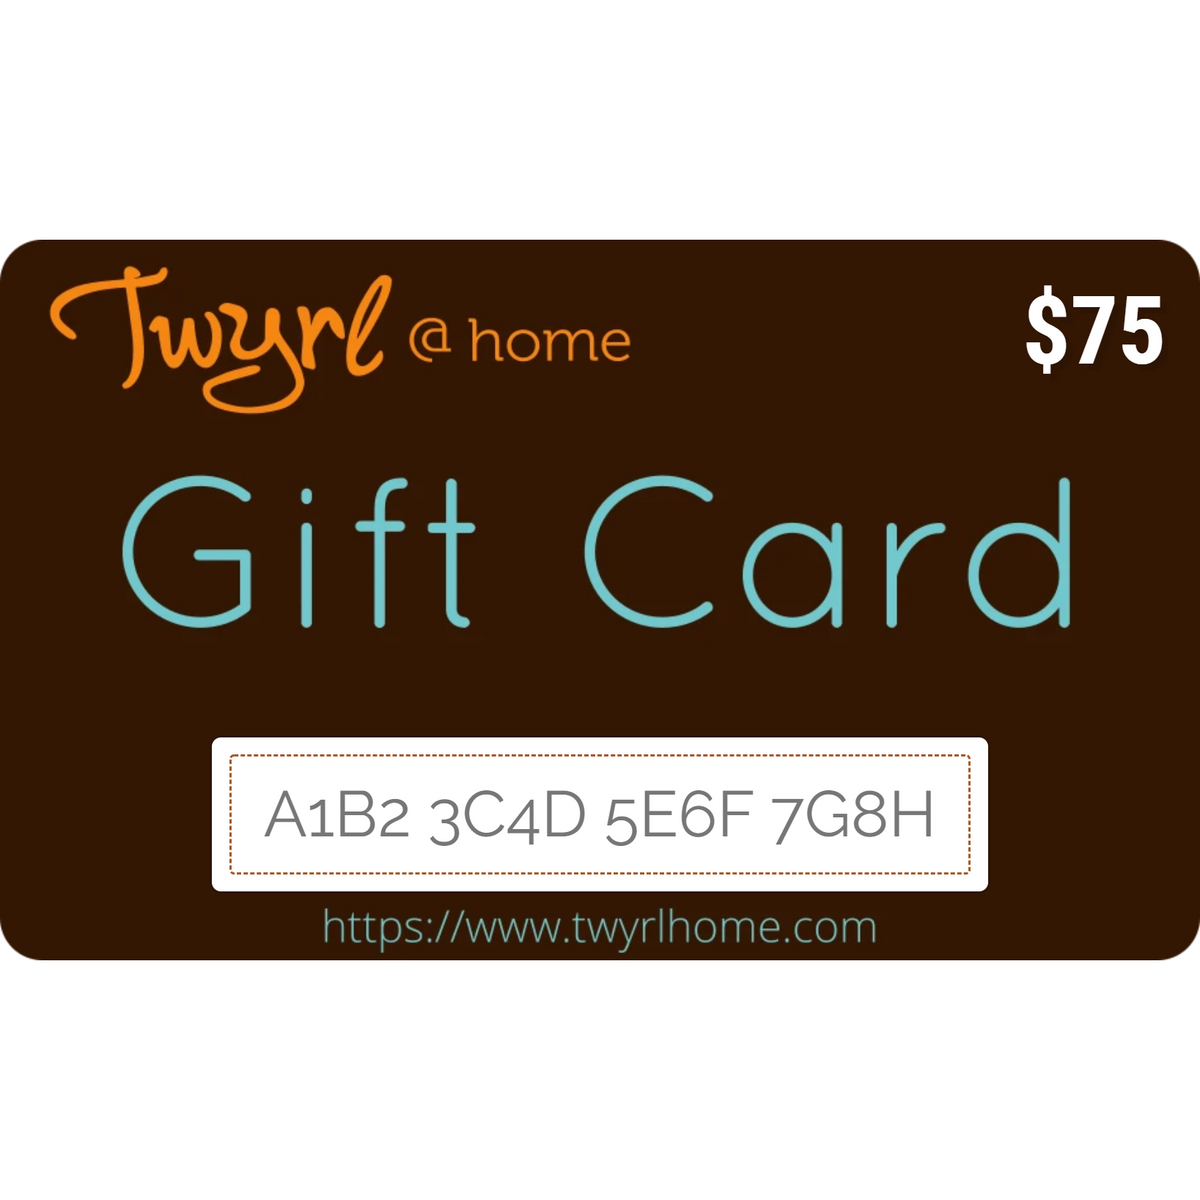 Twyrl@Home Gift Cards